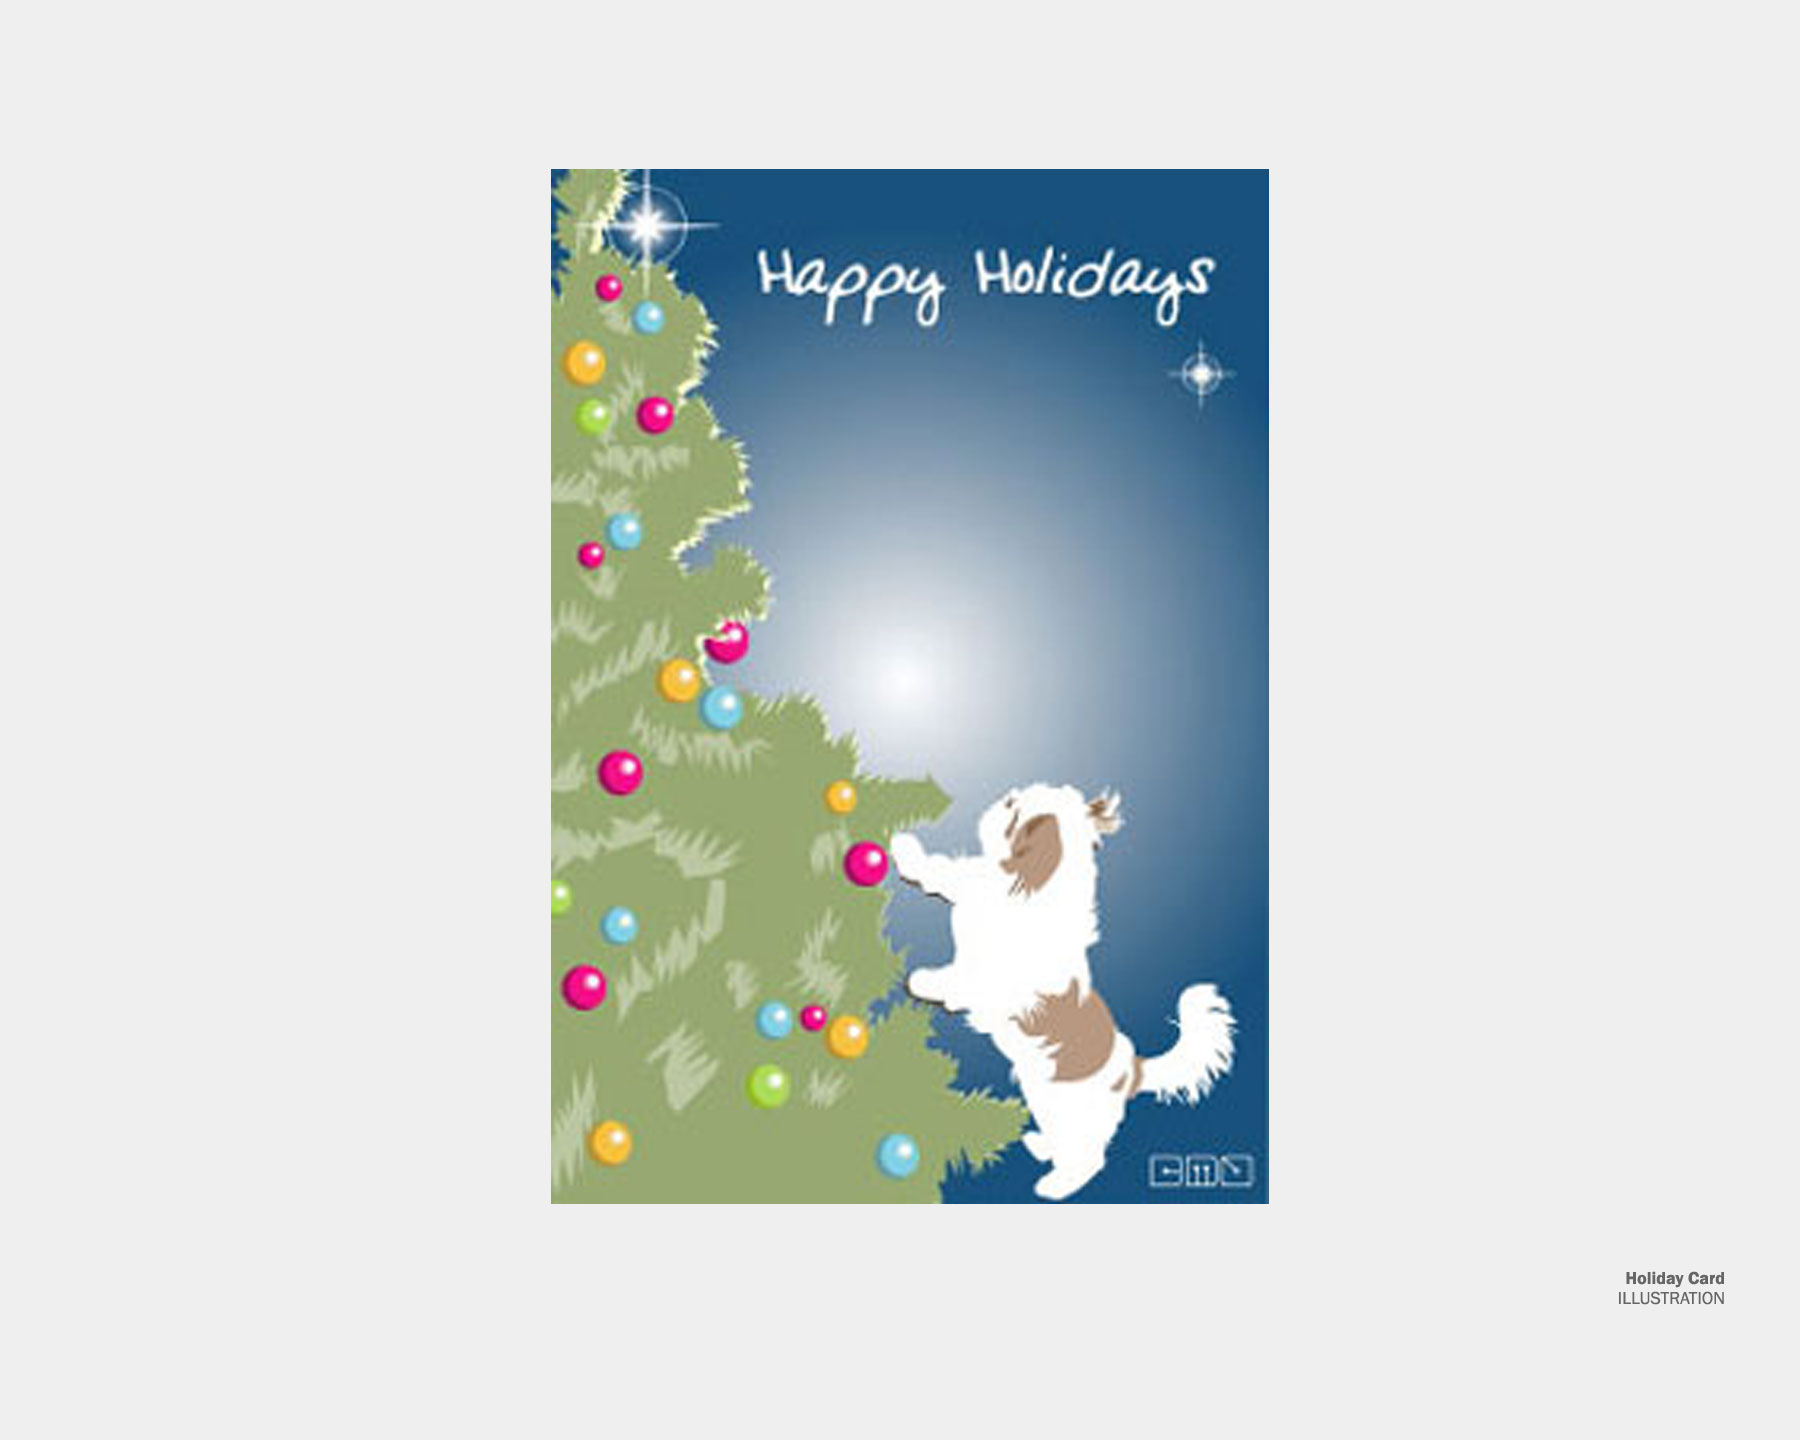 P-CMY-Illustration-Holiday-Card-1800